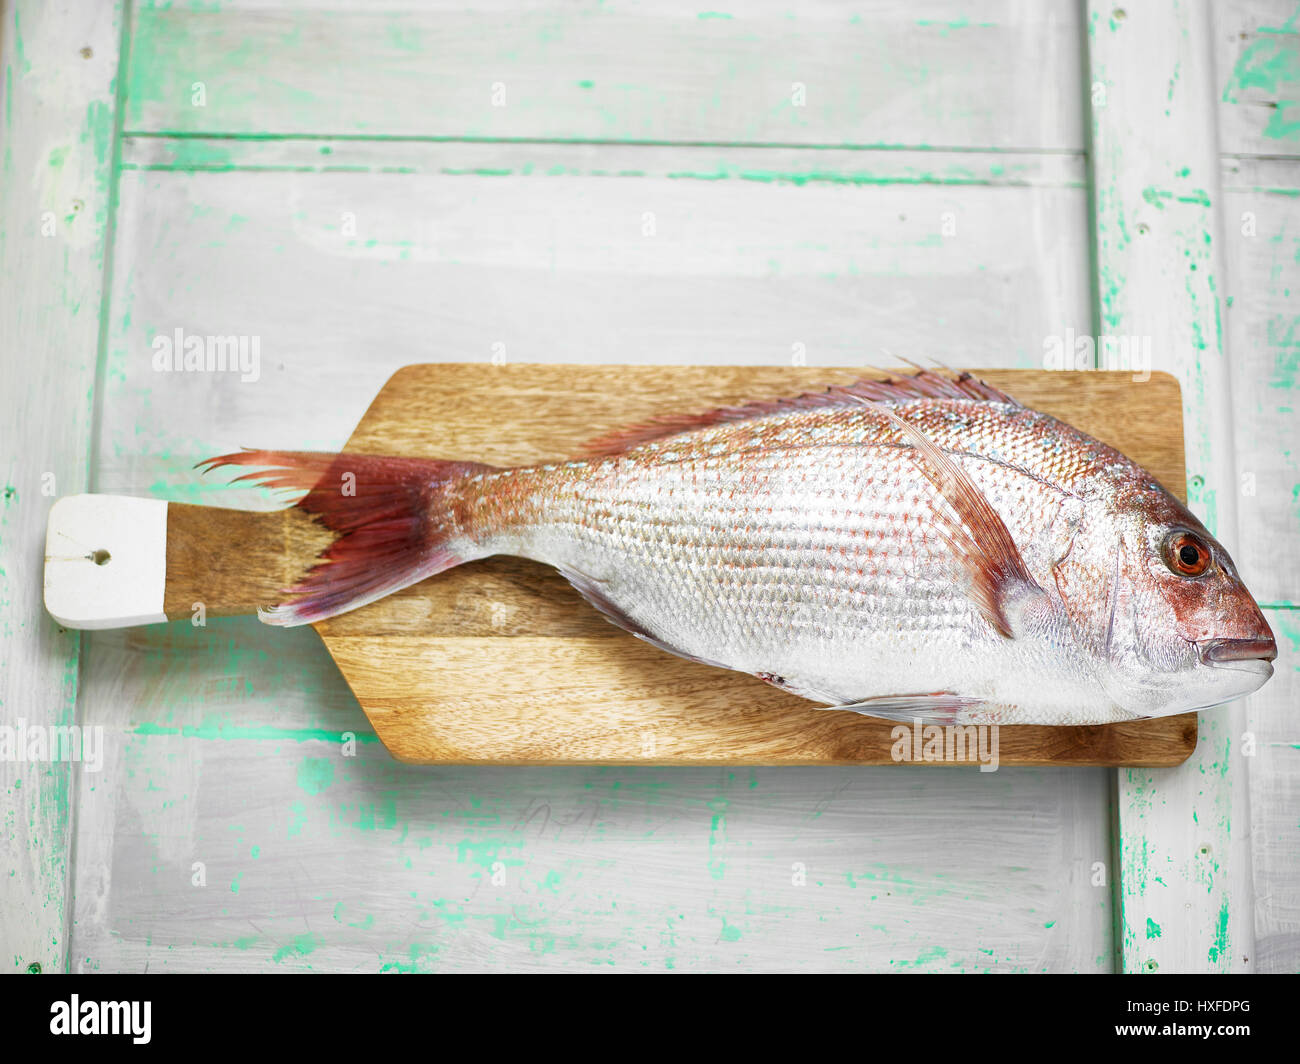 Fresh red snapper fish on chopping board ready for filleting - Stock Image